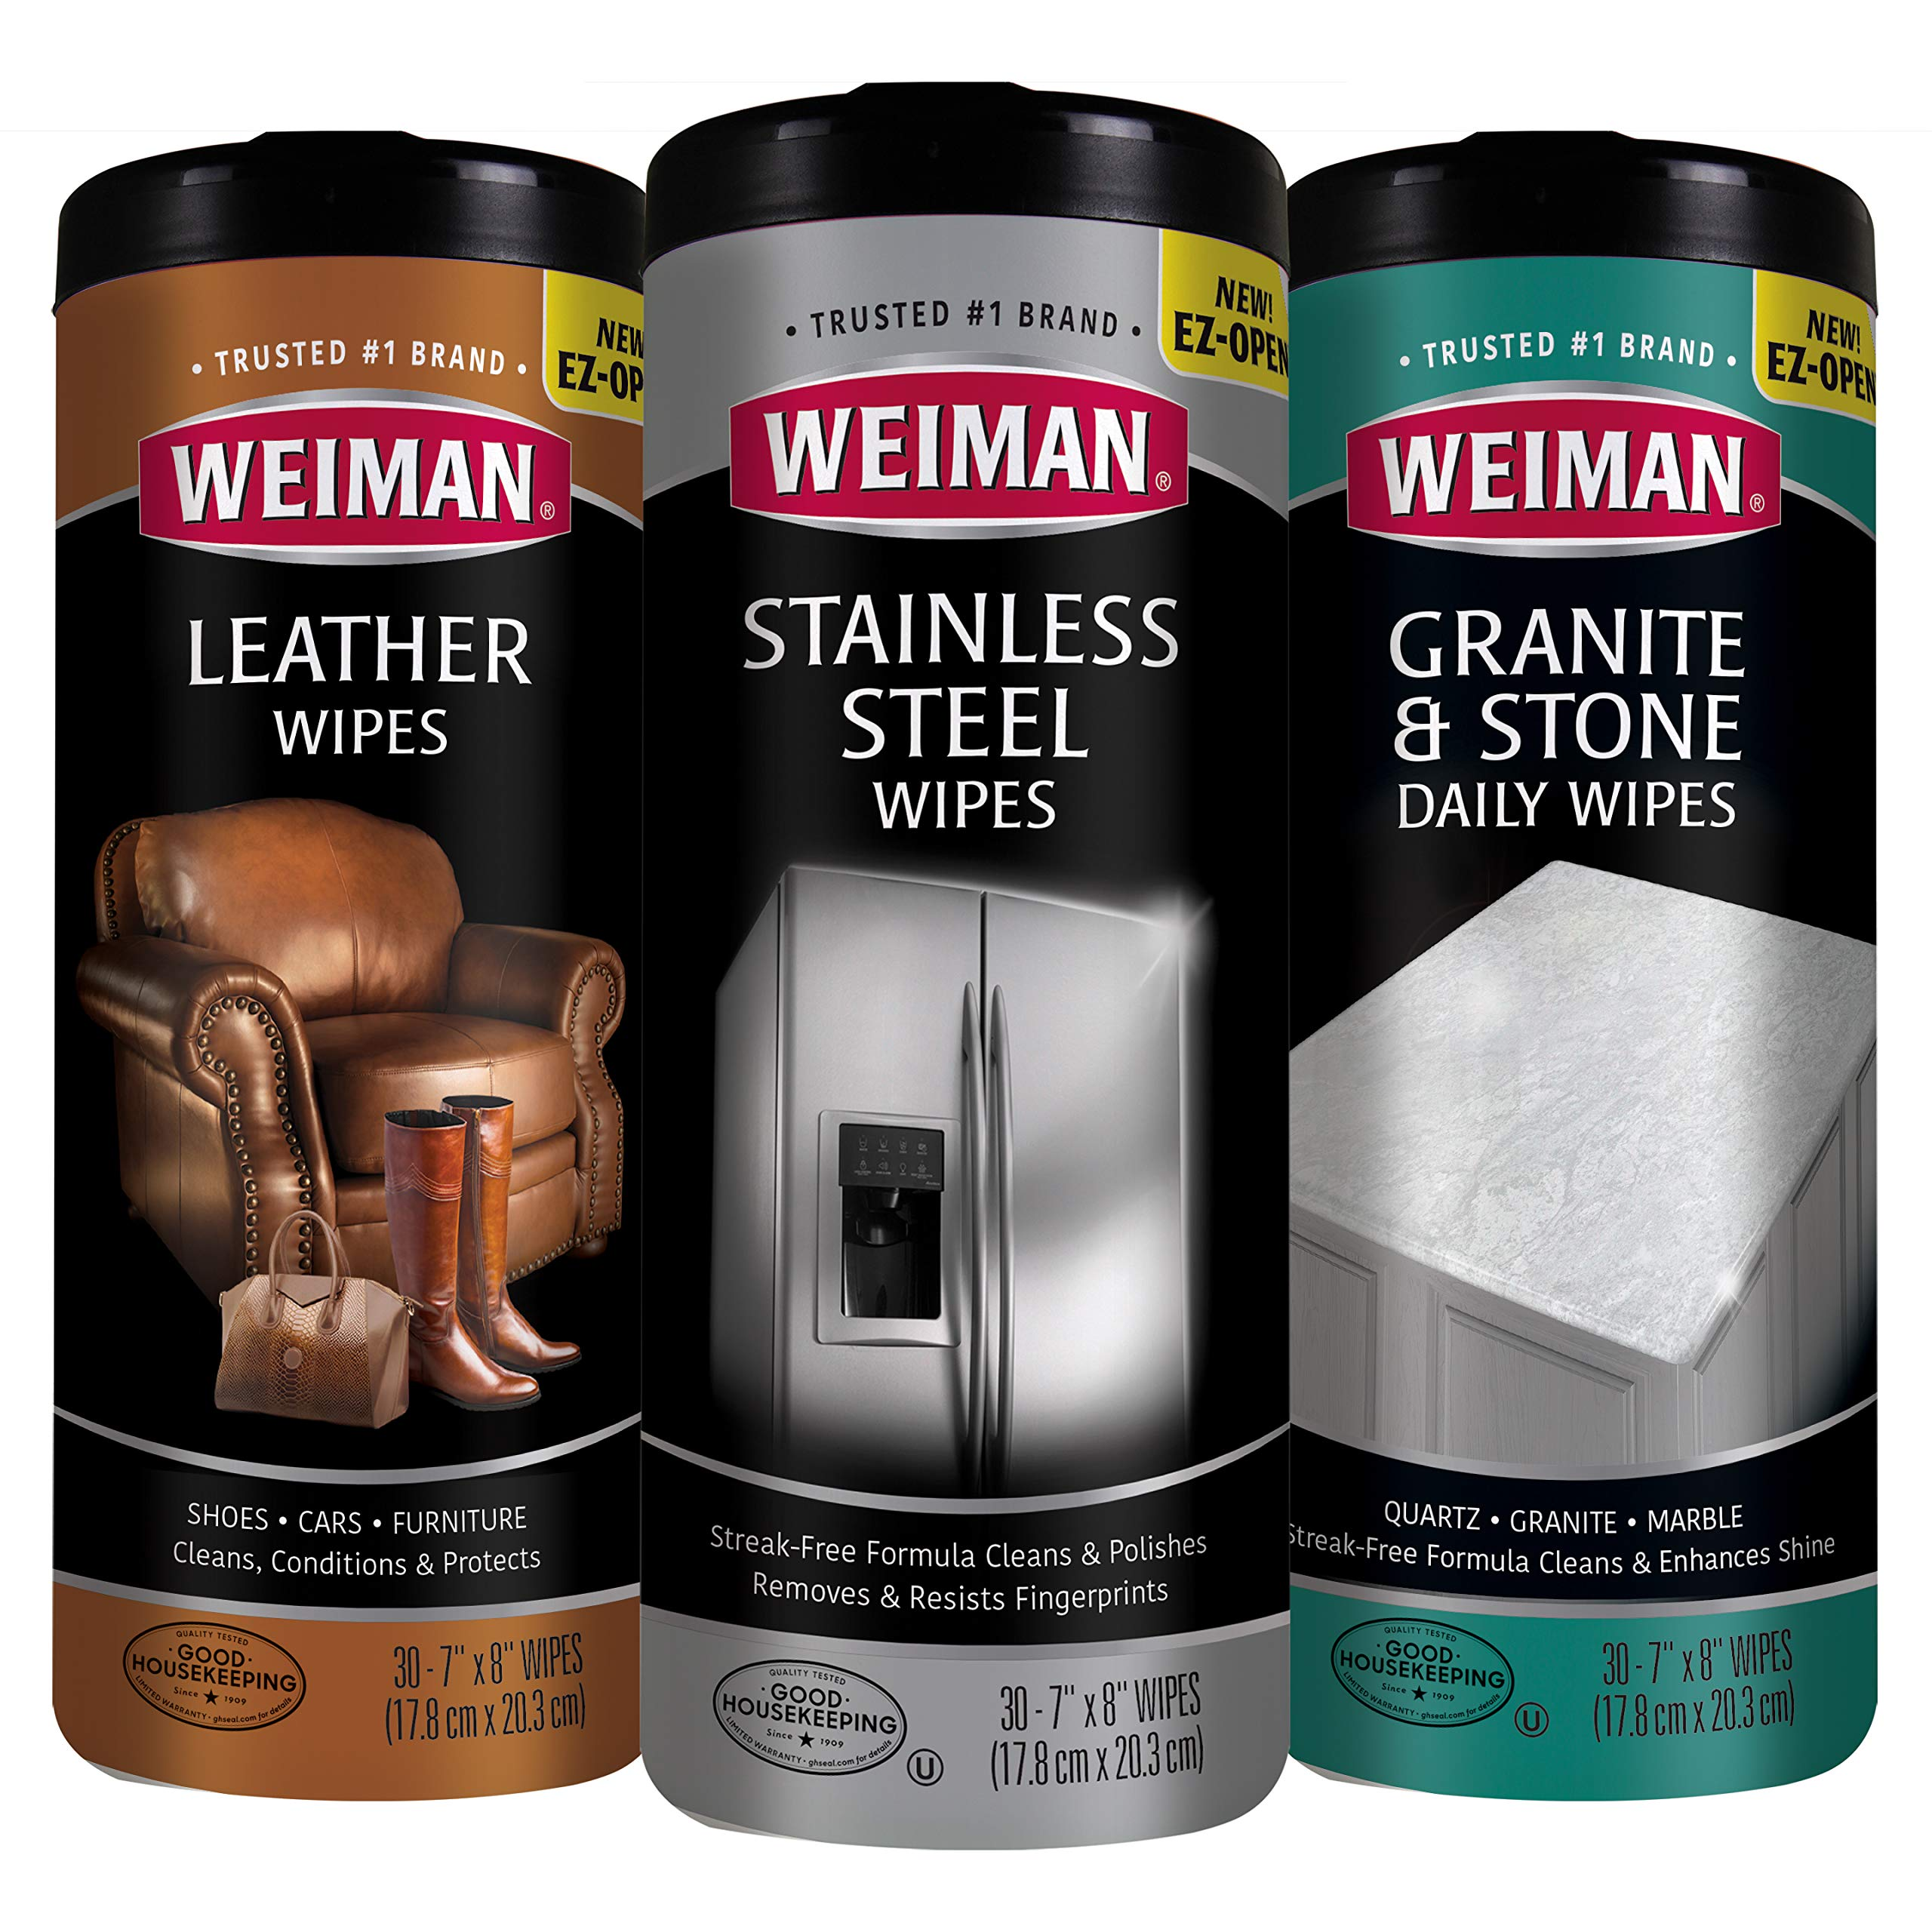 Weiman Wipes Variety (3 Pack) - Stainless Steel, Leather, and Granite Non-Toxic Wipes - 90 Wipes by Weiman